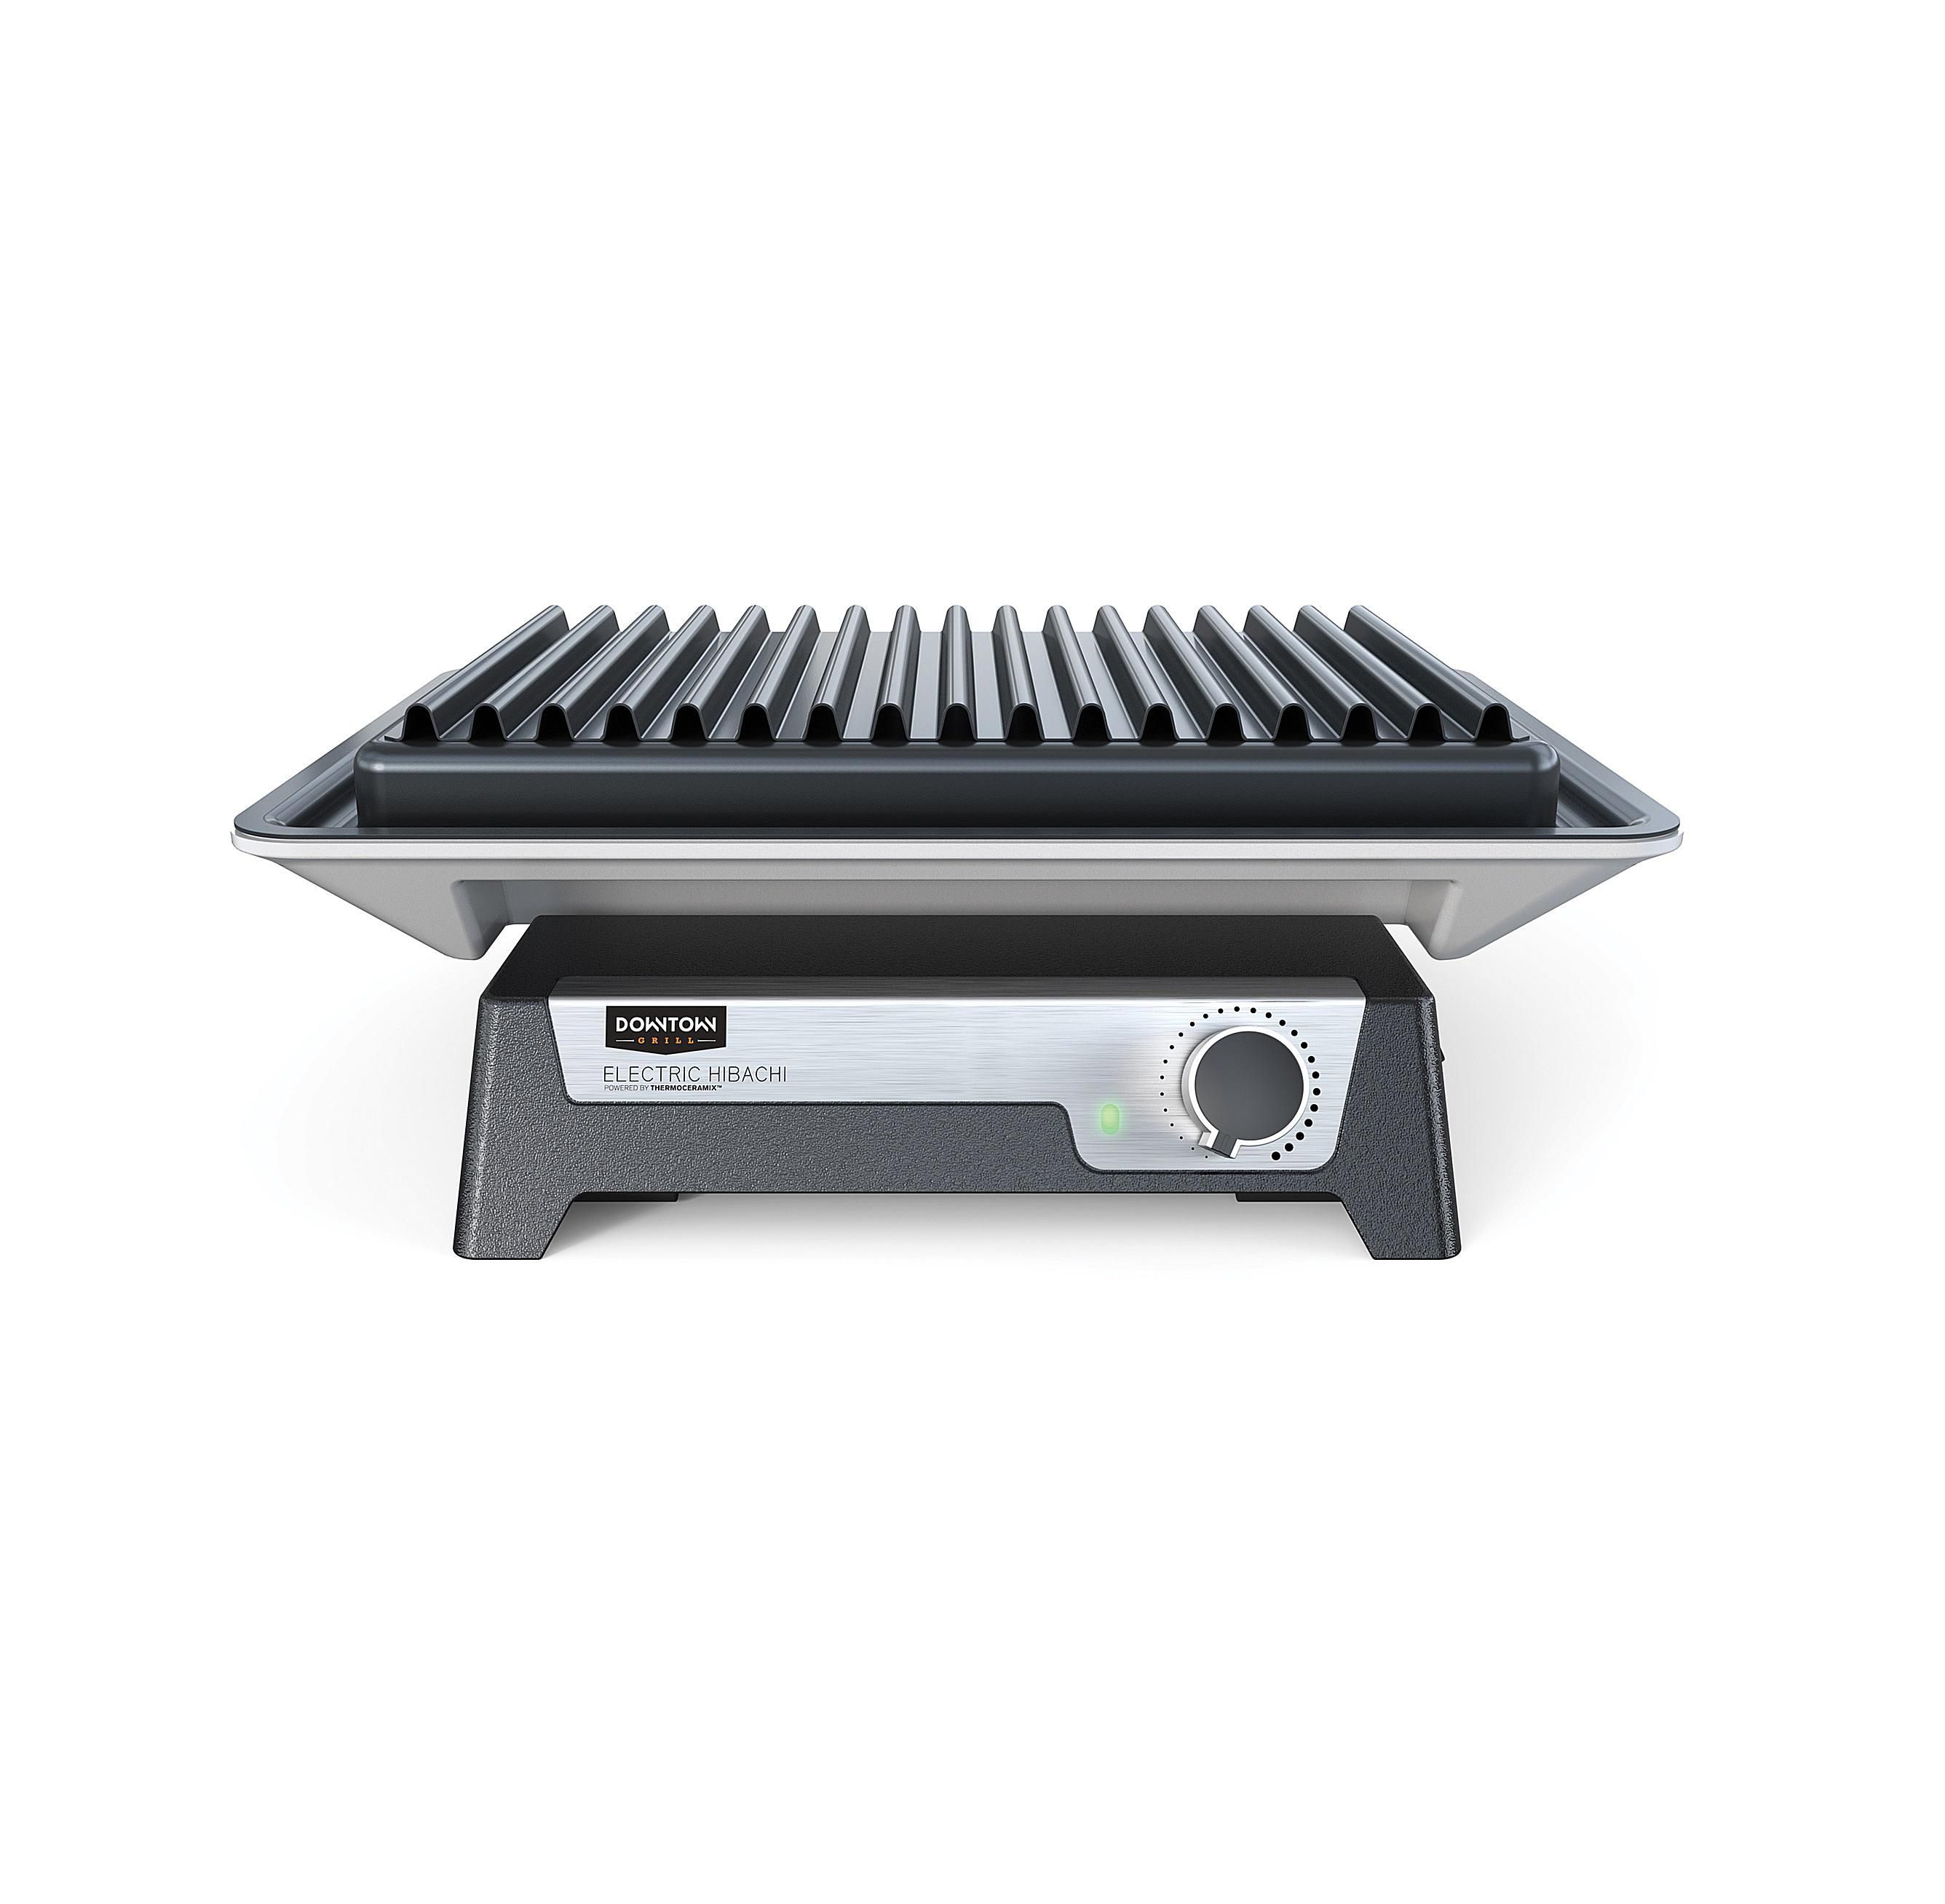 downtown grill electric hibachi review